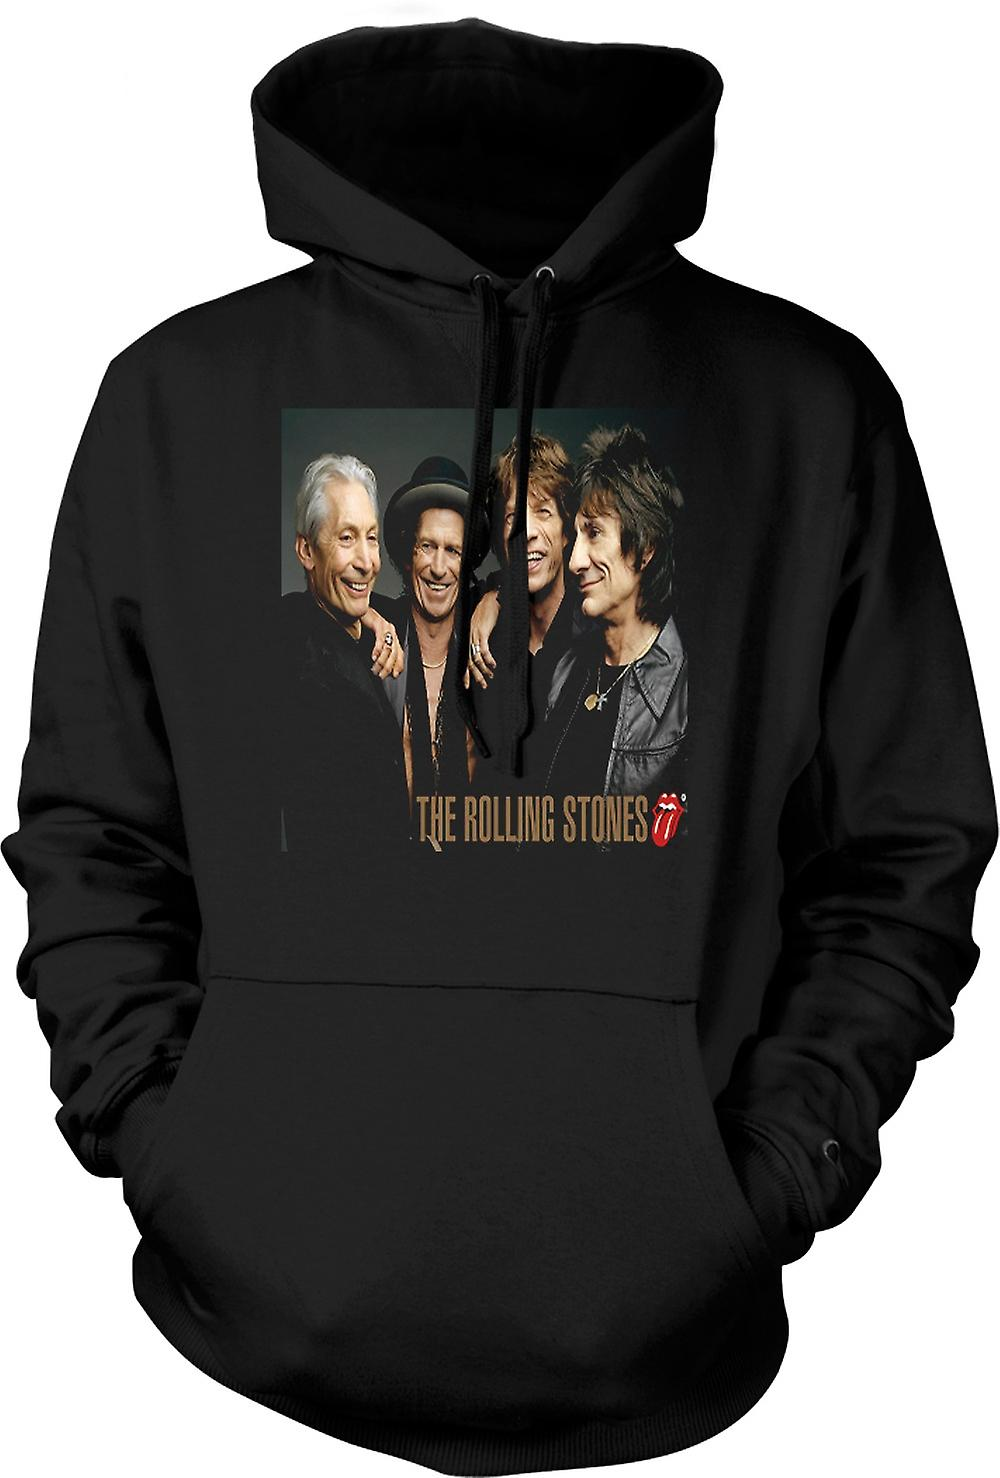 Kids Hoodie - The Rolling Stones - Band Portrait - Lips